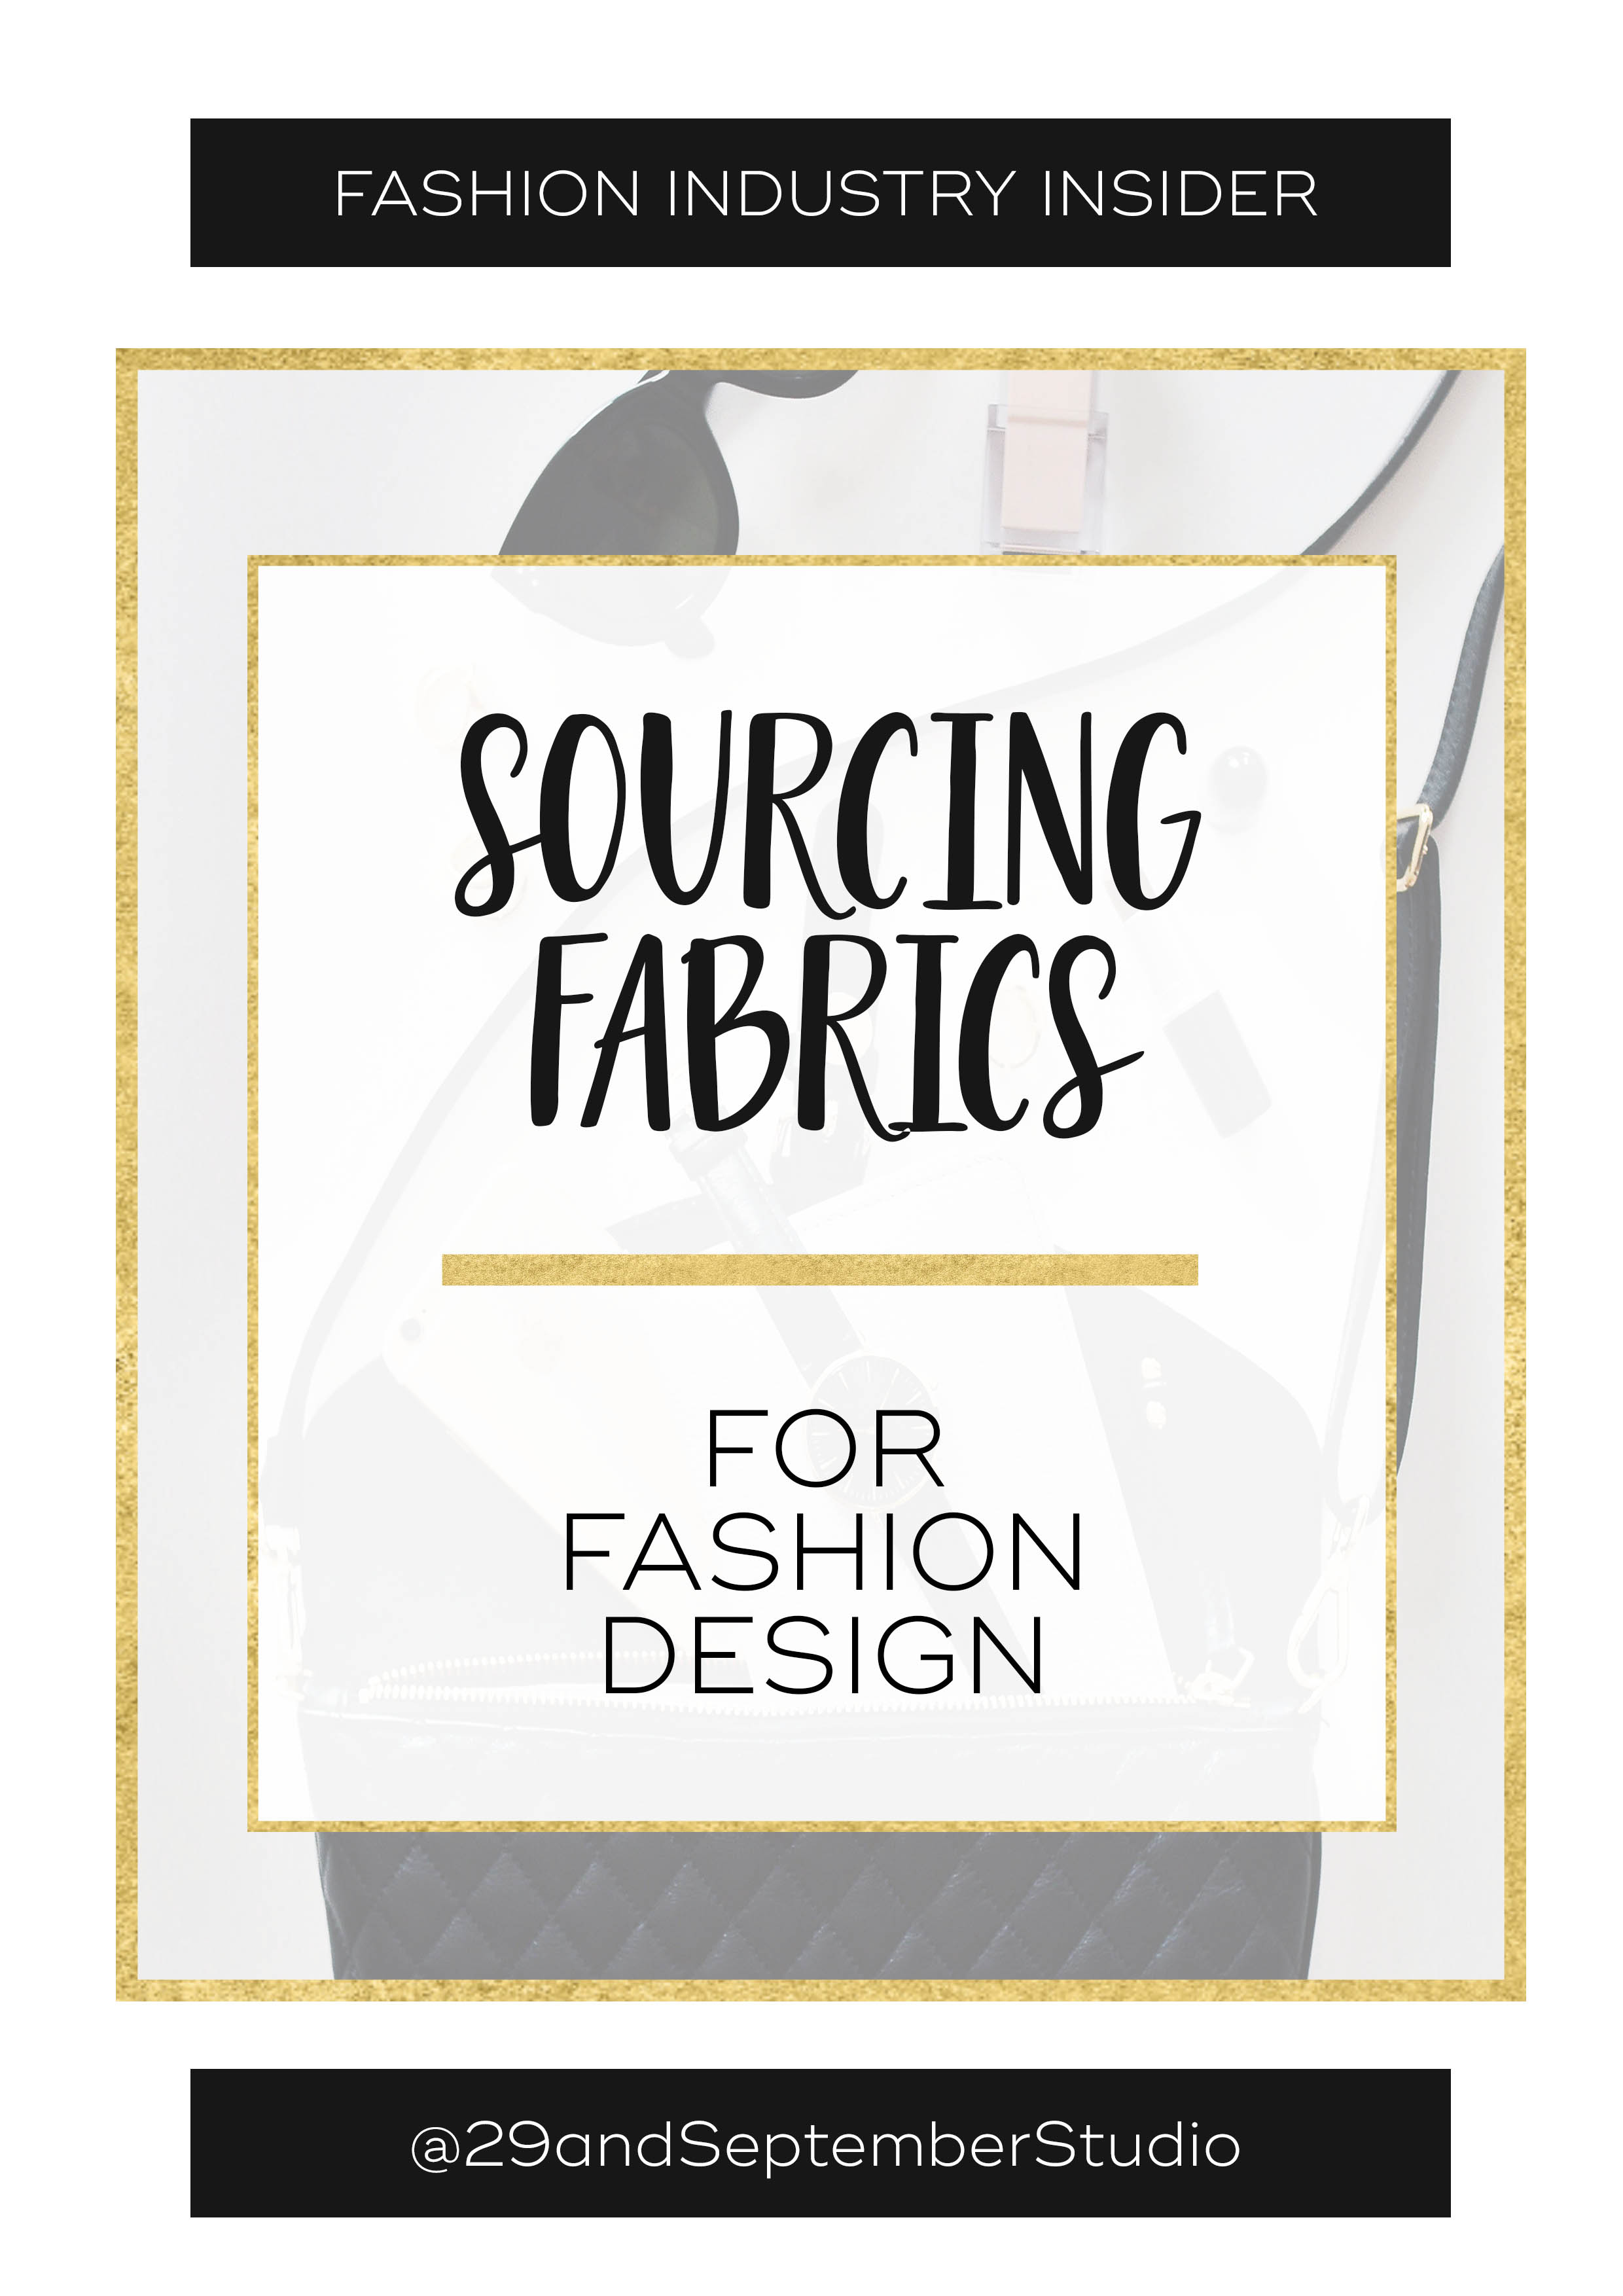 Sourcing fabrics for Fashion | What fabrics do I need for my fashion line | How to start a fashion business